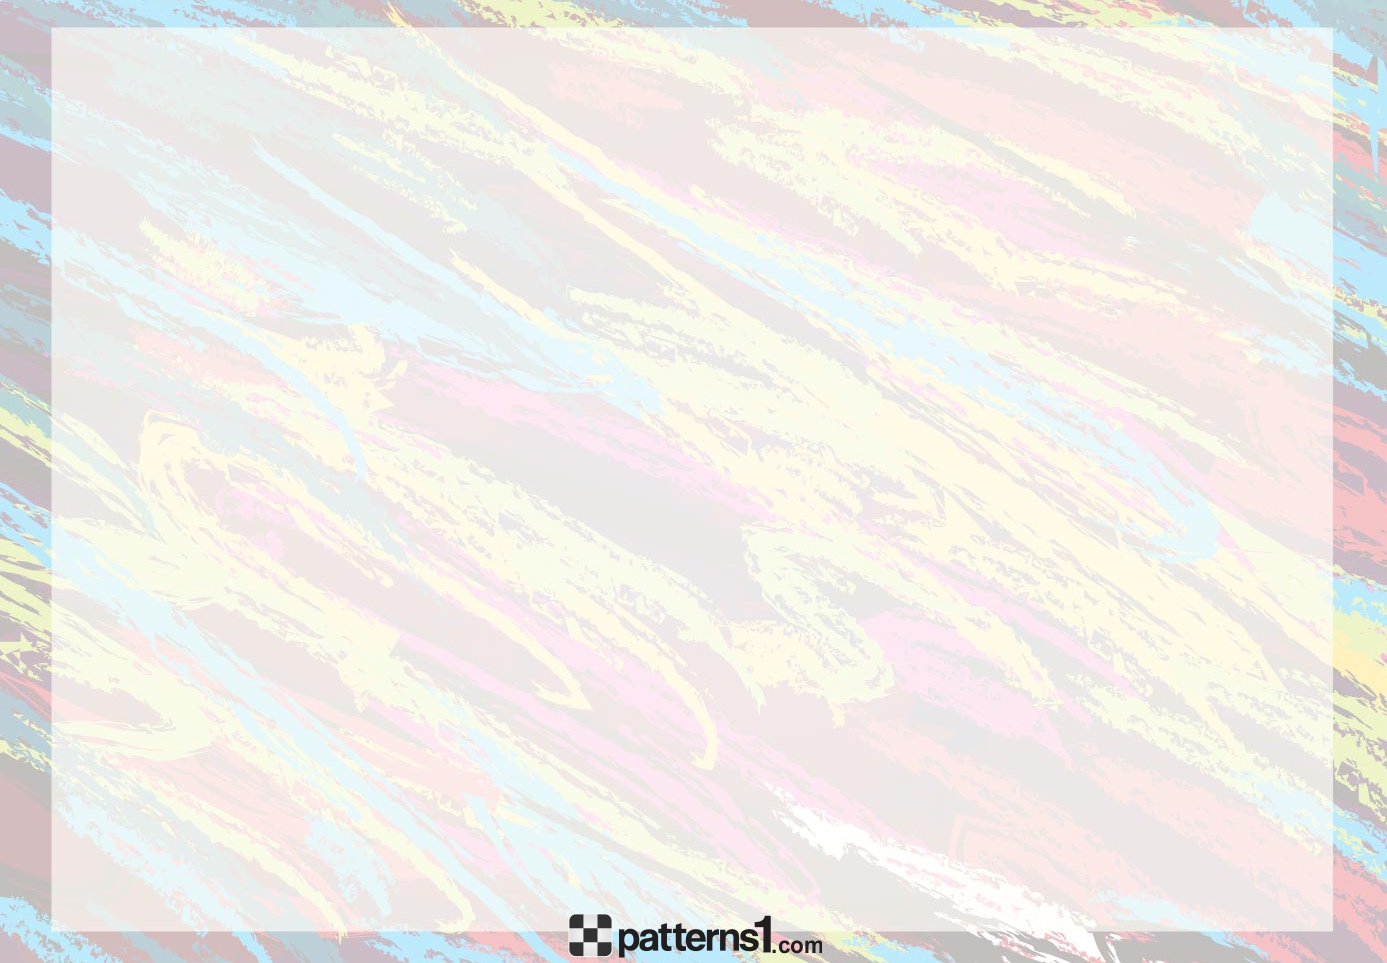 Abstract grunge painted background clipart vector pattern design ... clip art freeuse download